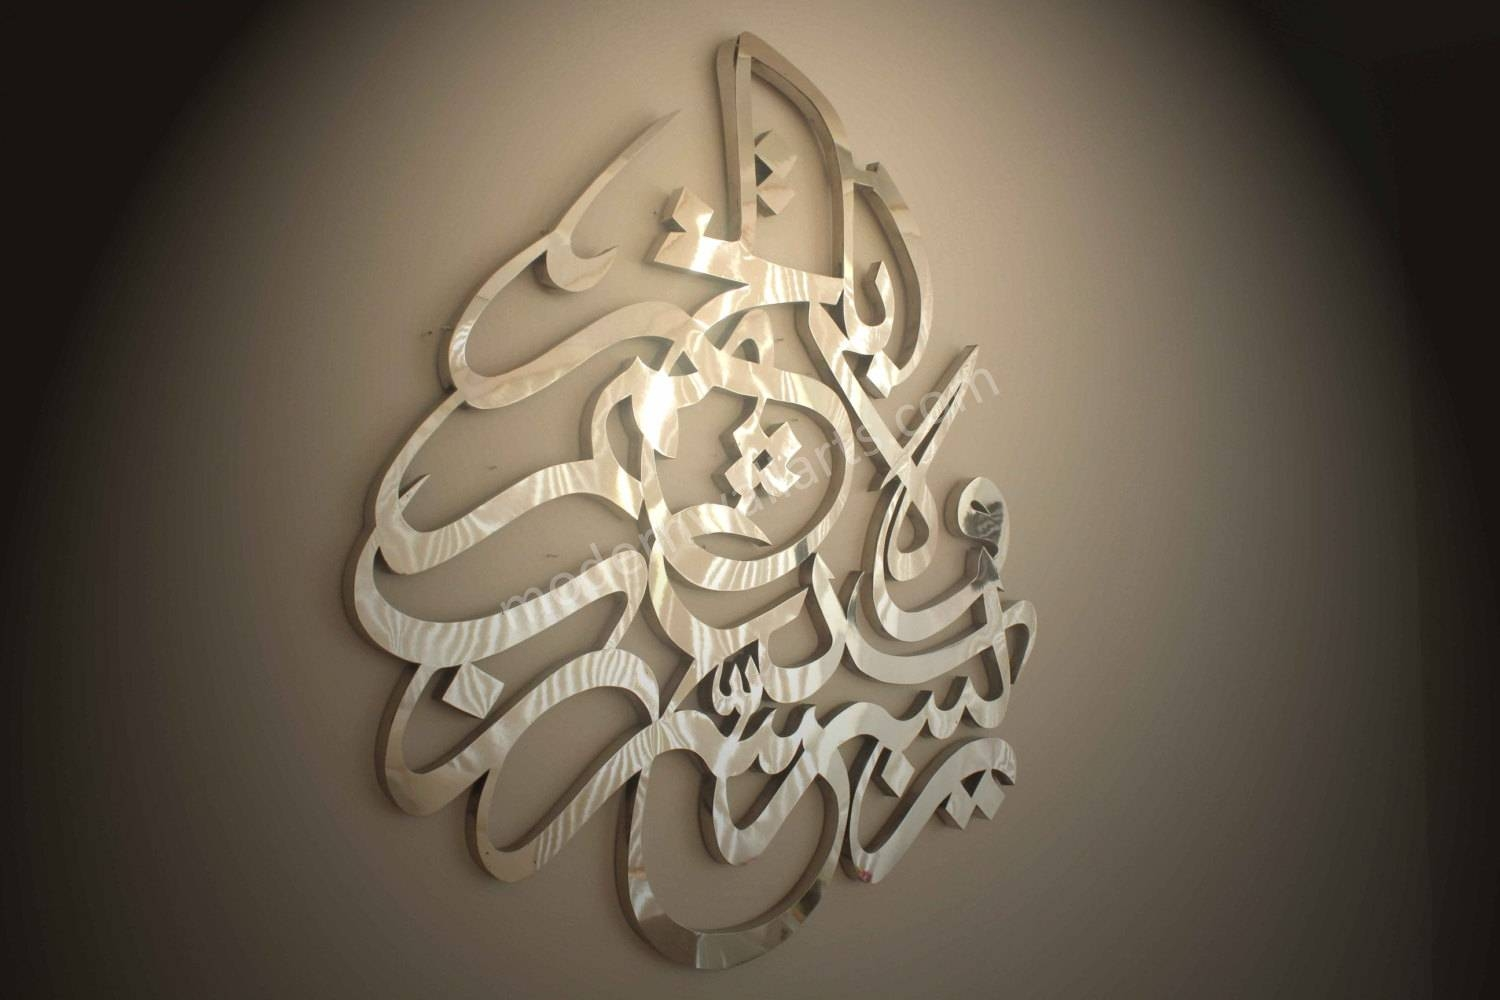 Stainless Steel Islamic Dua – Modern Wall Arts Inside Most Recent Islamic Metal Wall Art (View 14 of 20)